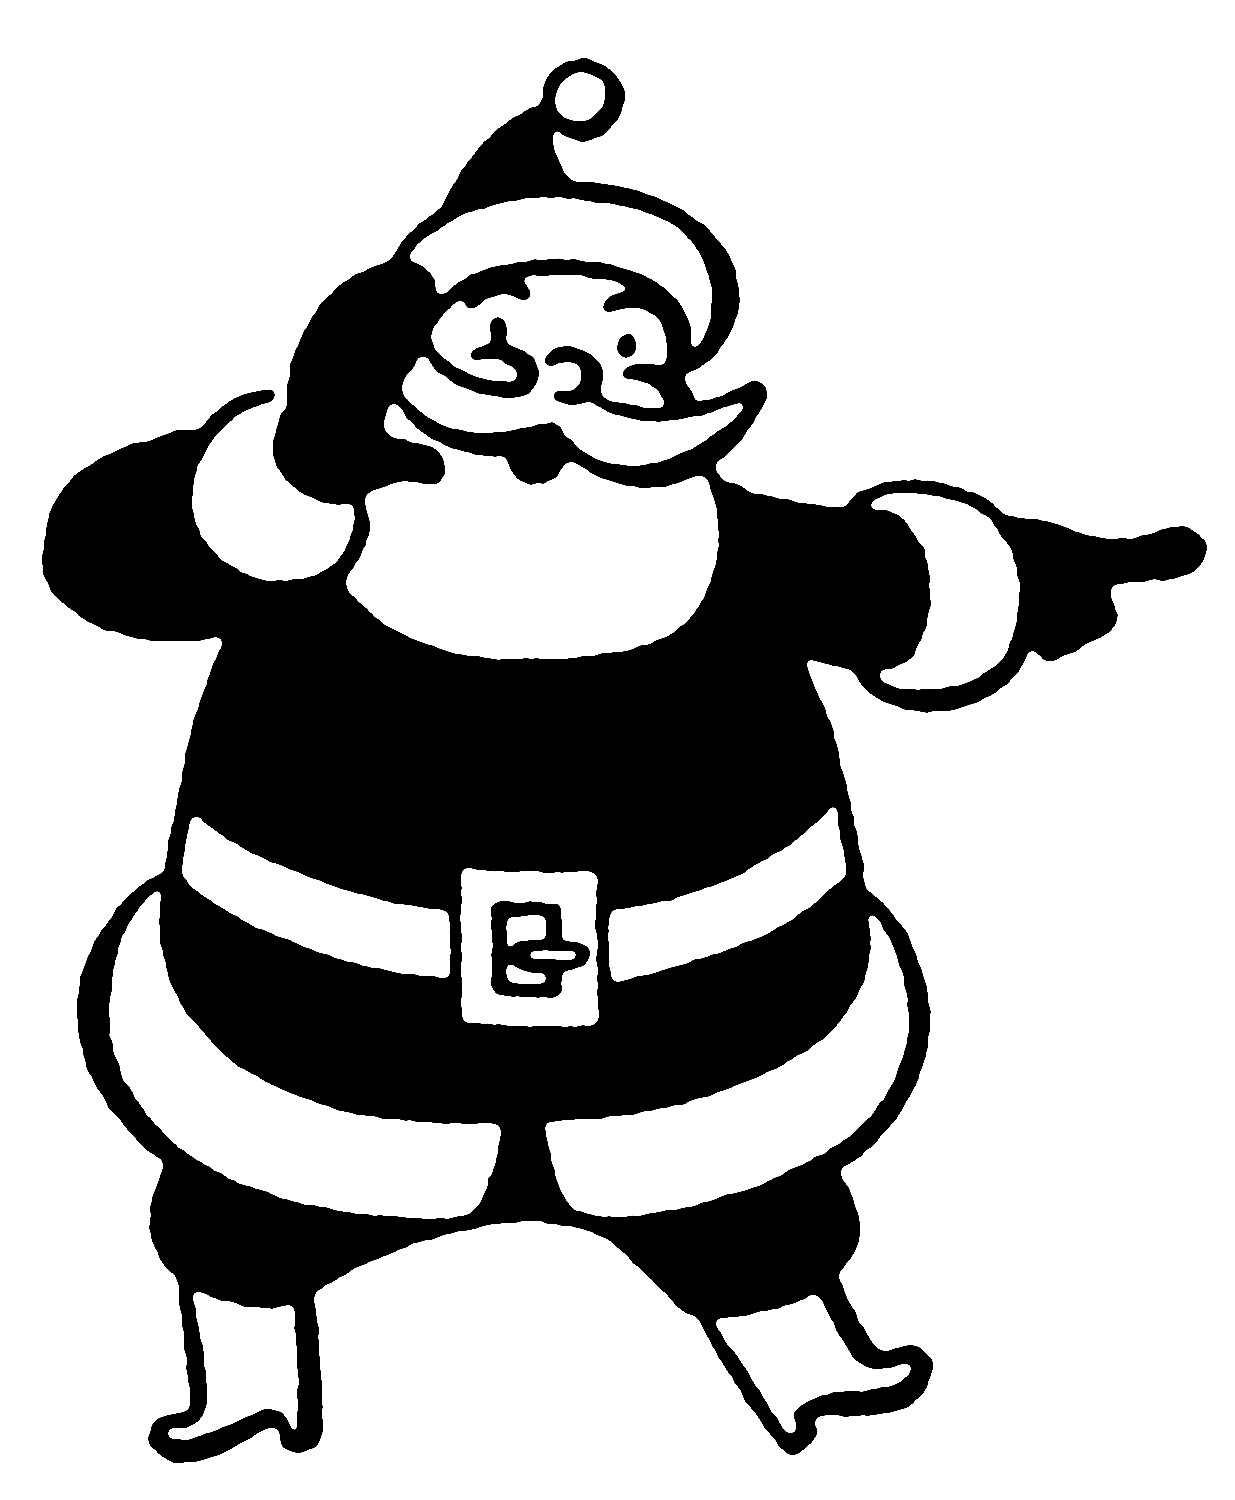 1235x1500 Christmas Black And White Christian Clip Art Free Black And White